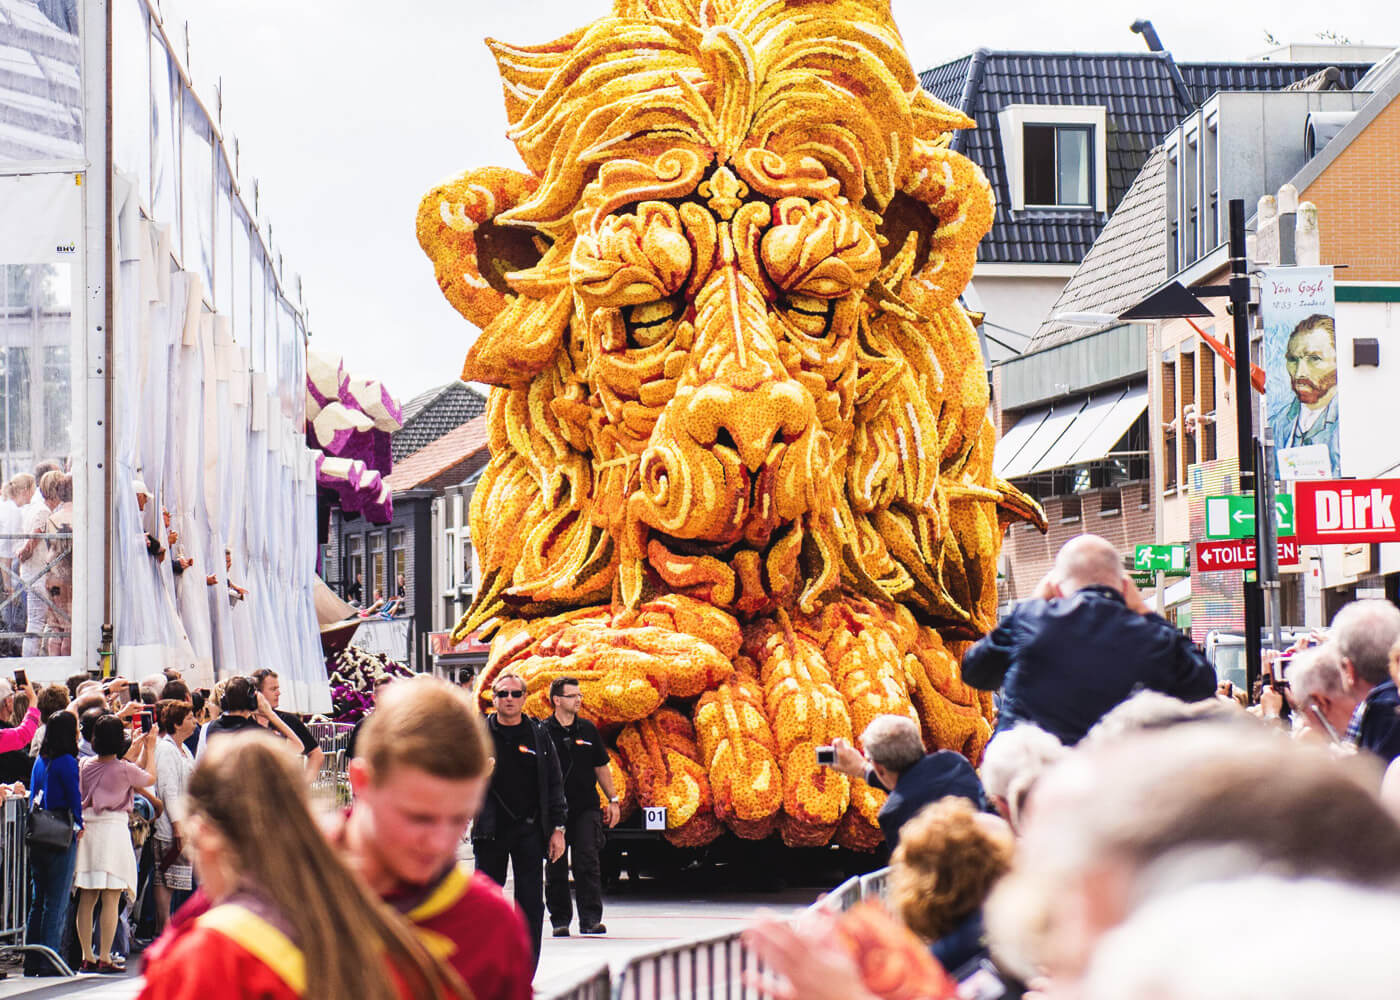 parade-of-flower-sculptures-in-holland-1